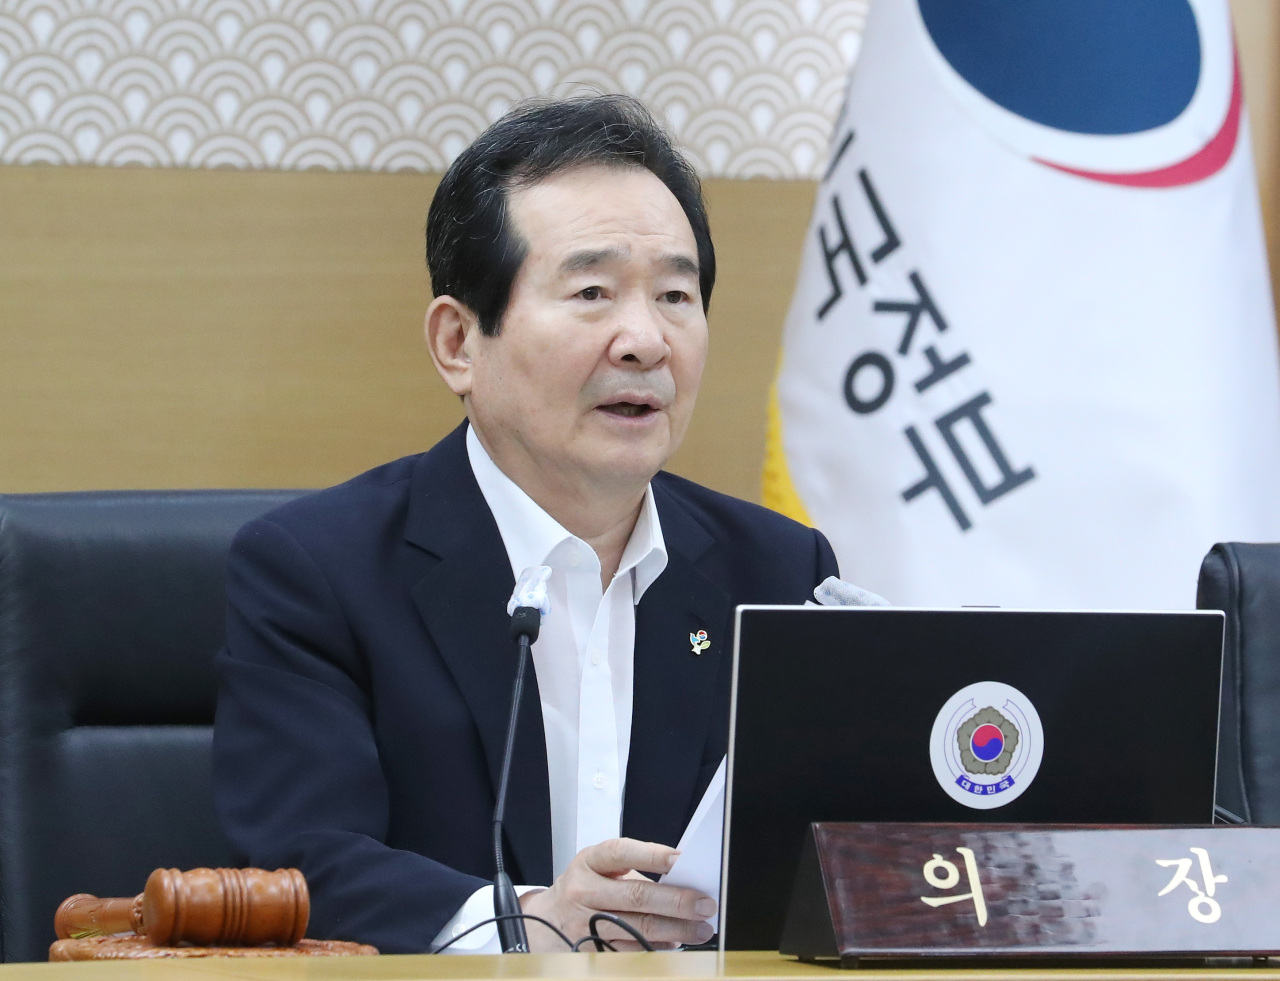 Prime Minister Chung Sye-kyung speaks during a Cabinet meeting at Sejong, Tuesday. (Yonhap)